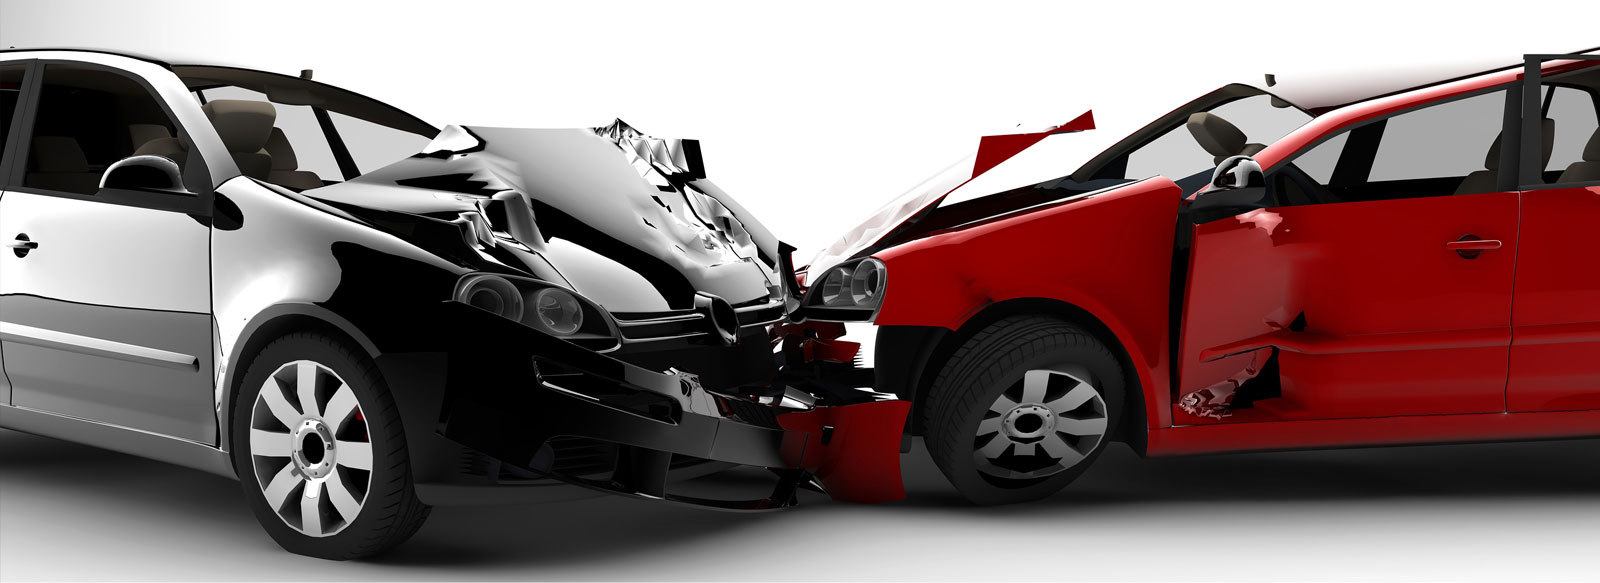 Car Accident & Smash Repairs in Sydney